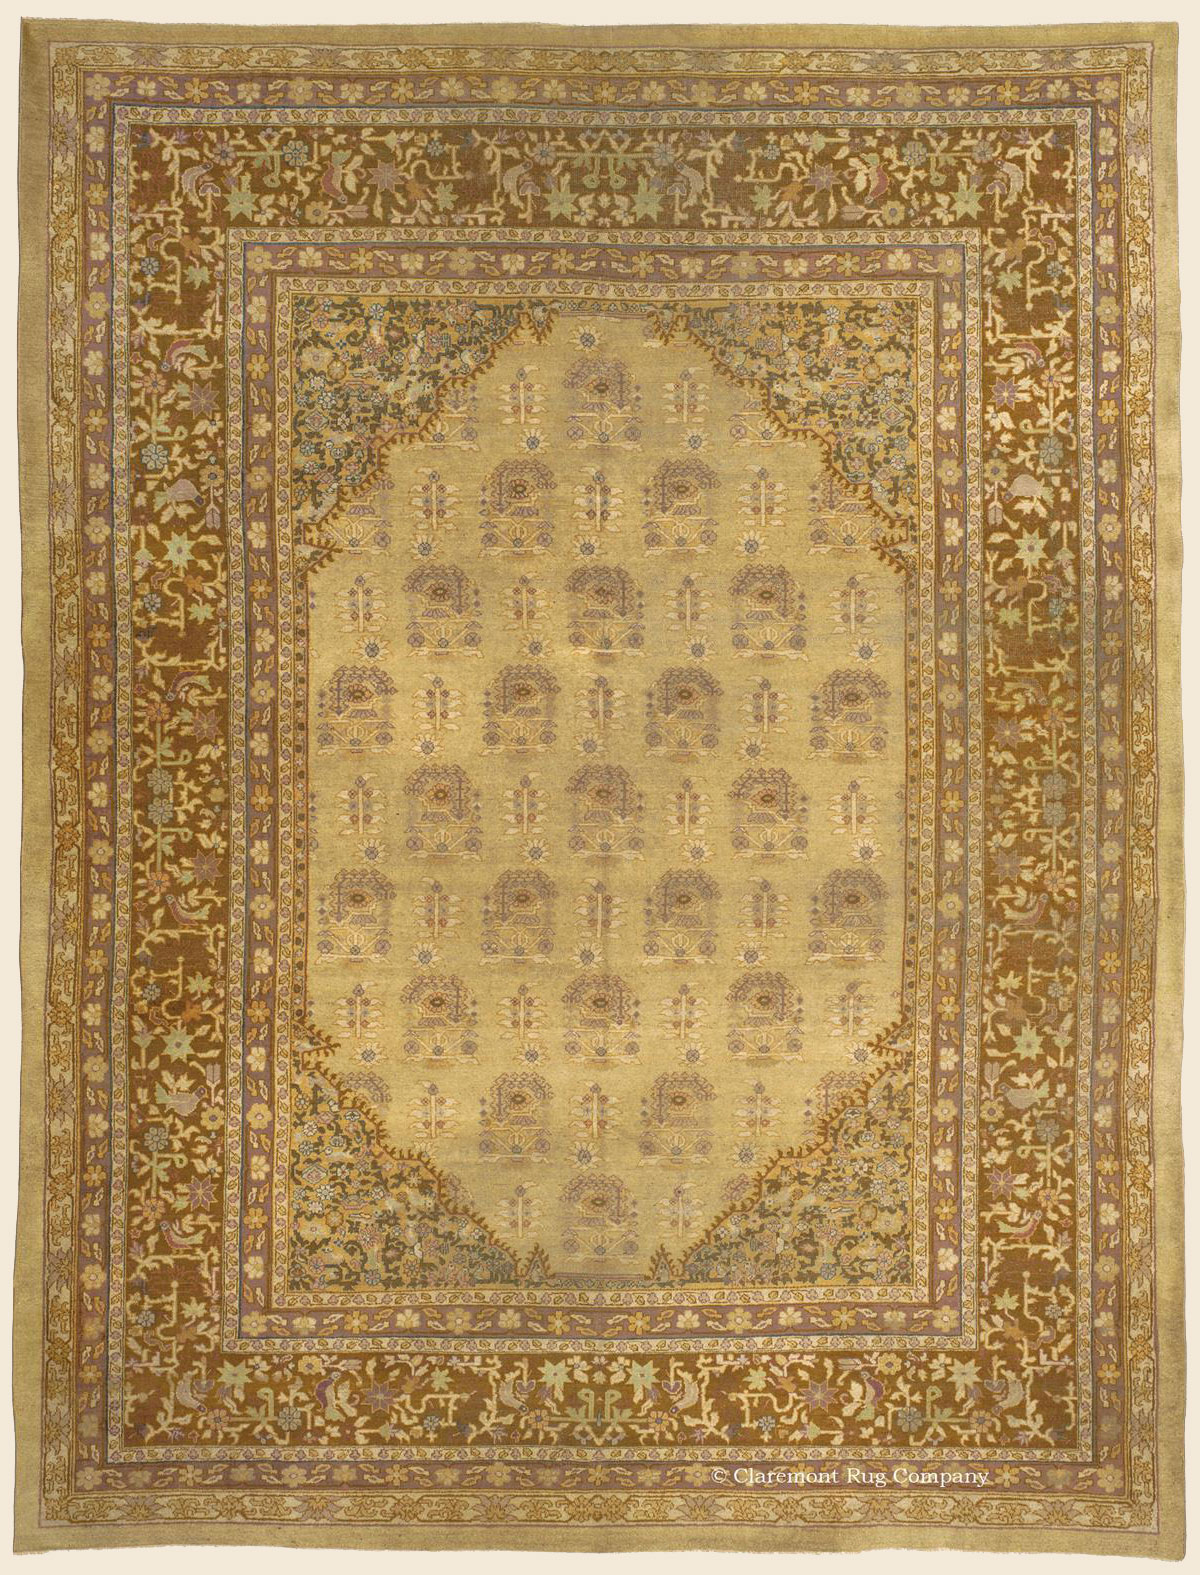 Turn of the century Room sized Antique Agra Carpet in soft neutrals and detailed spandrals